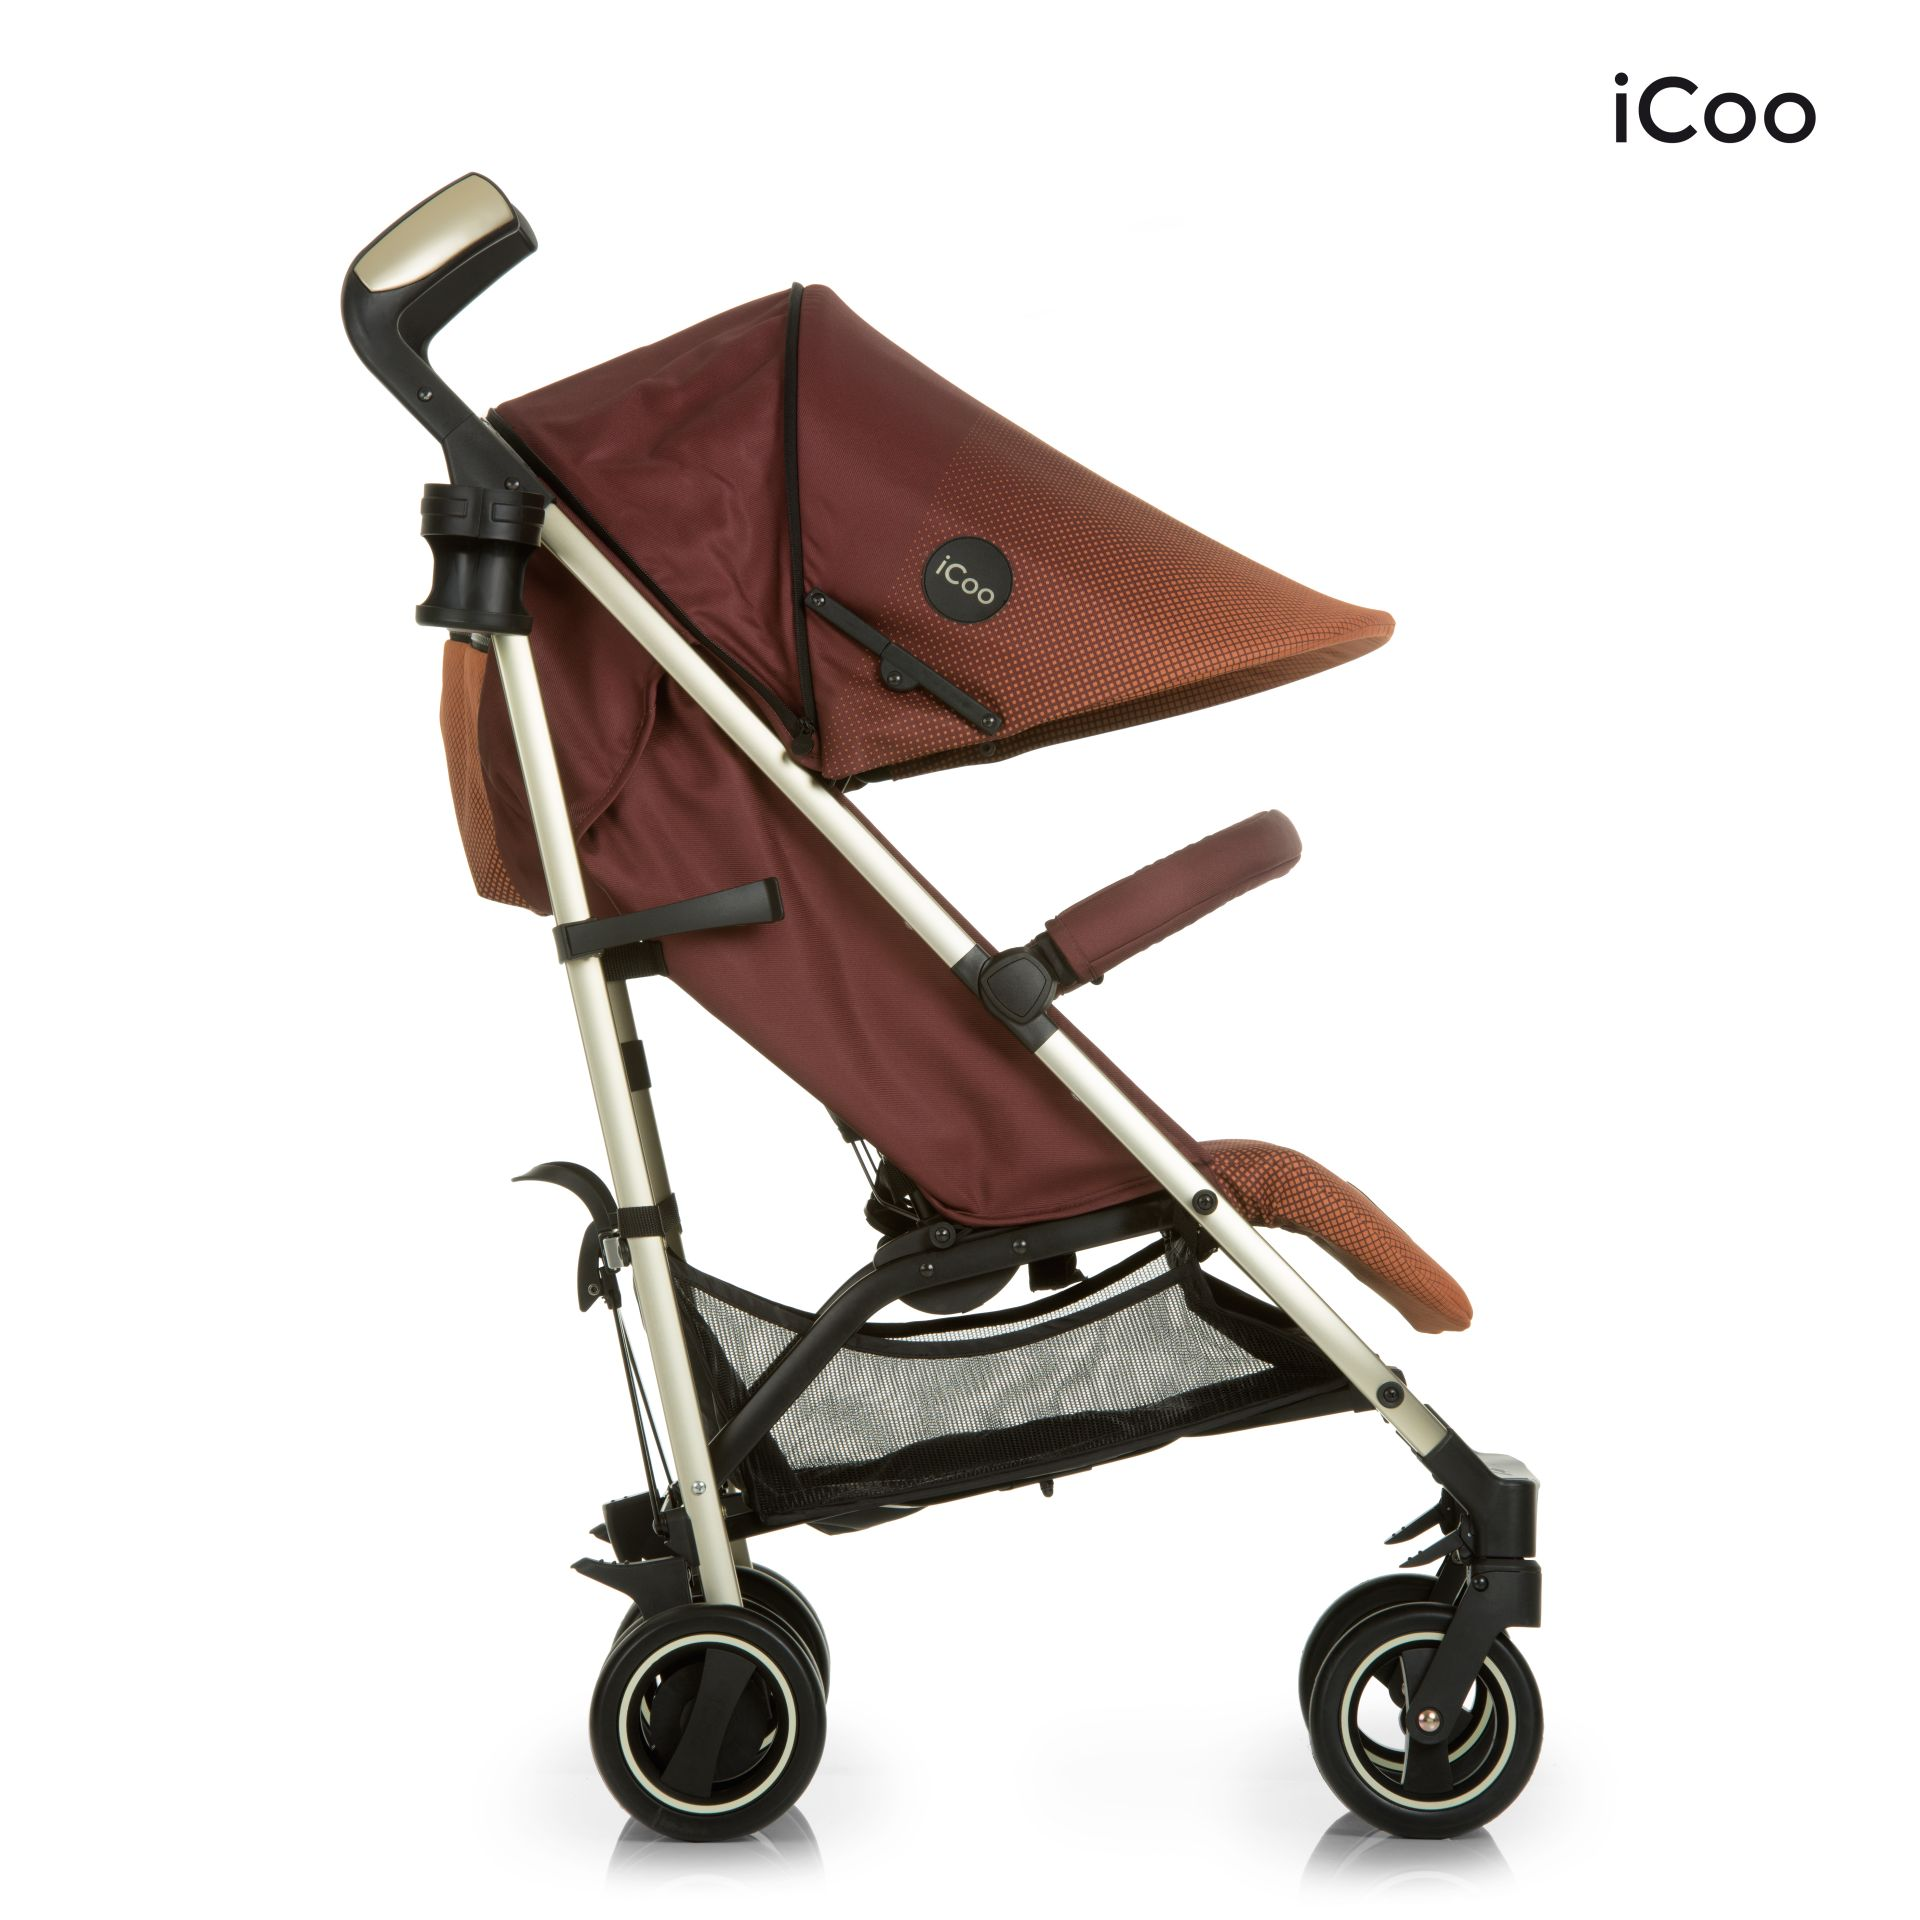 Silla De Paseo Icoo Icoo Buggy Pace 2018 Mocca Online Kaufen Bei Kidsroom